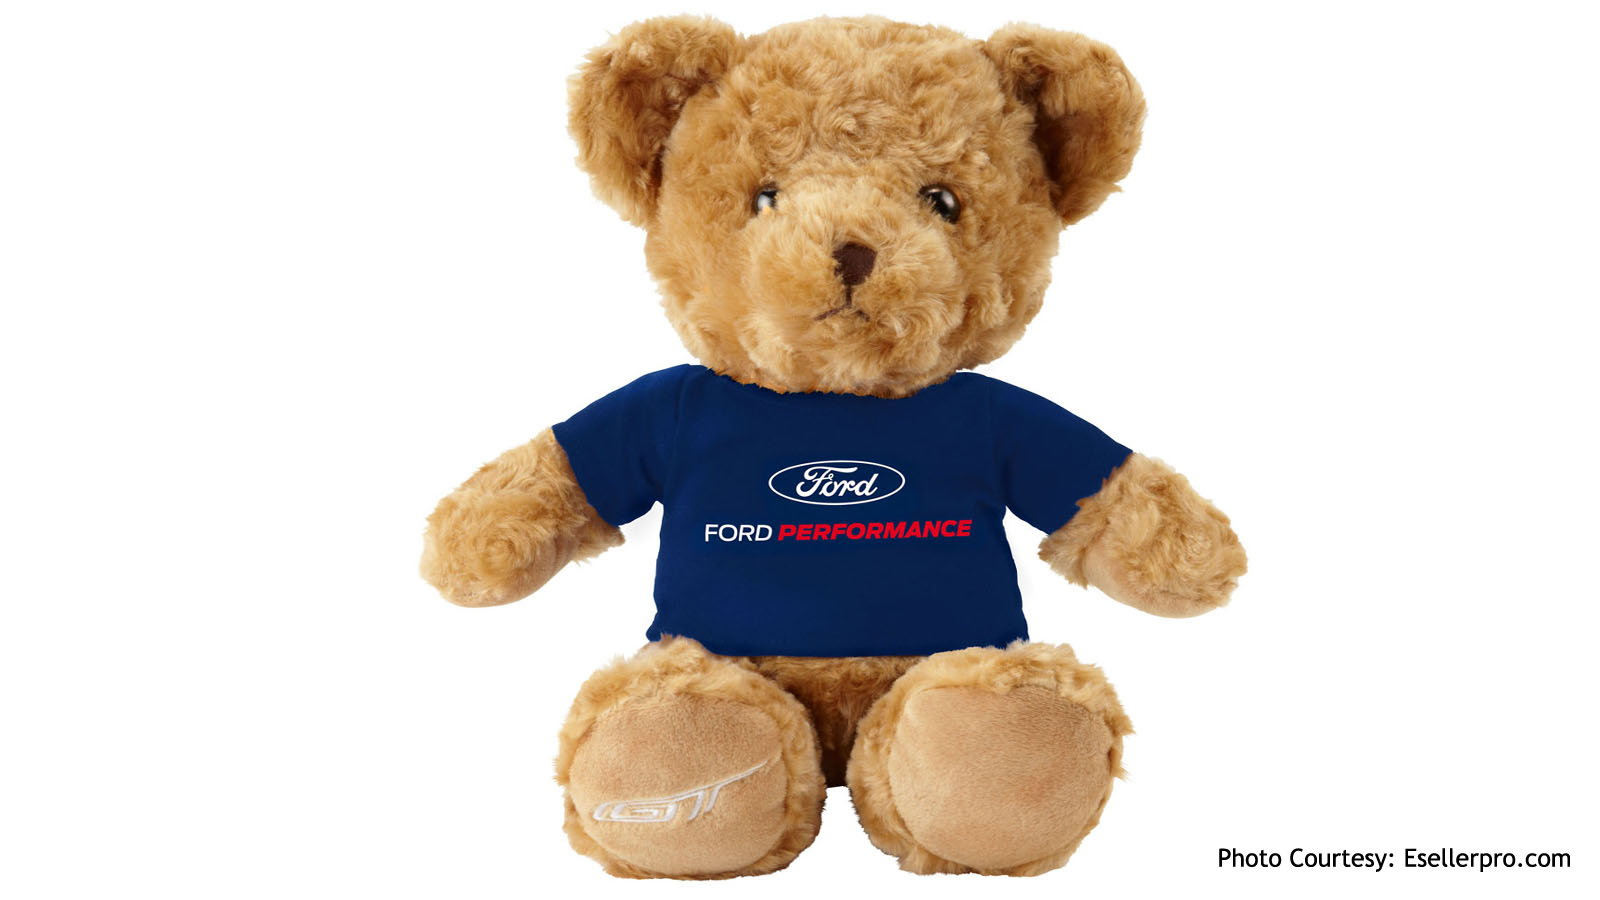 Ford's Teddy Bear